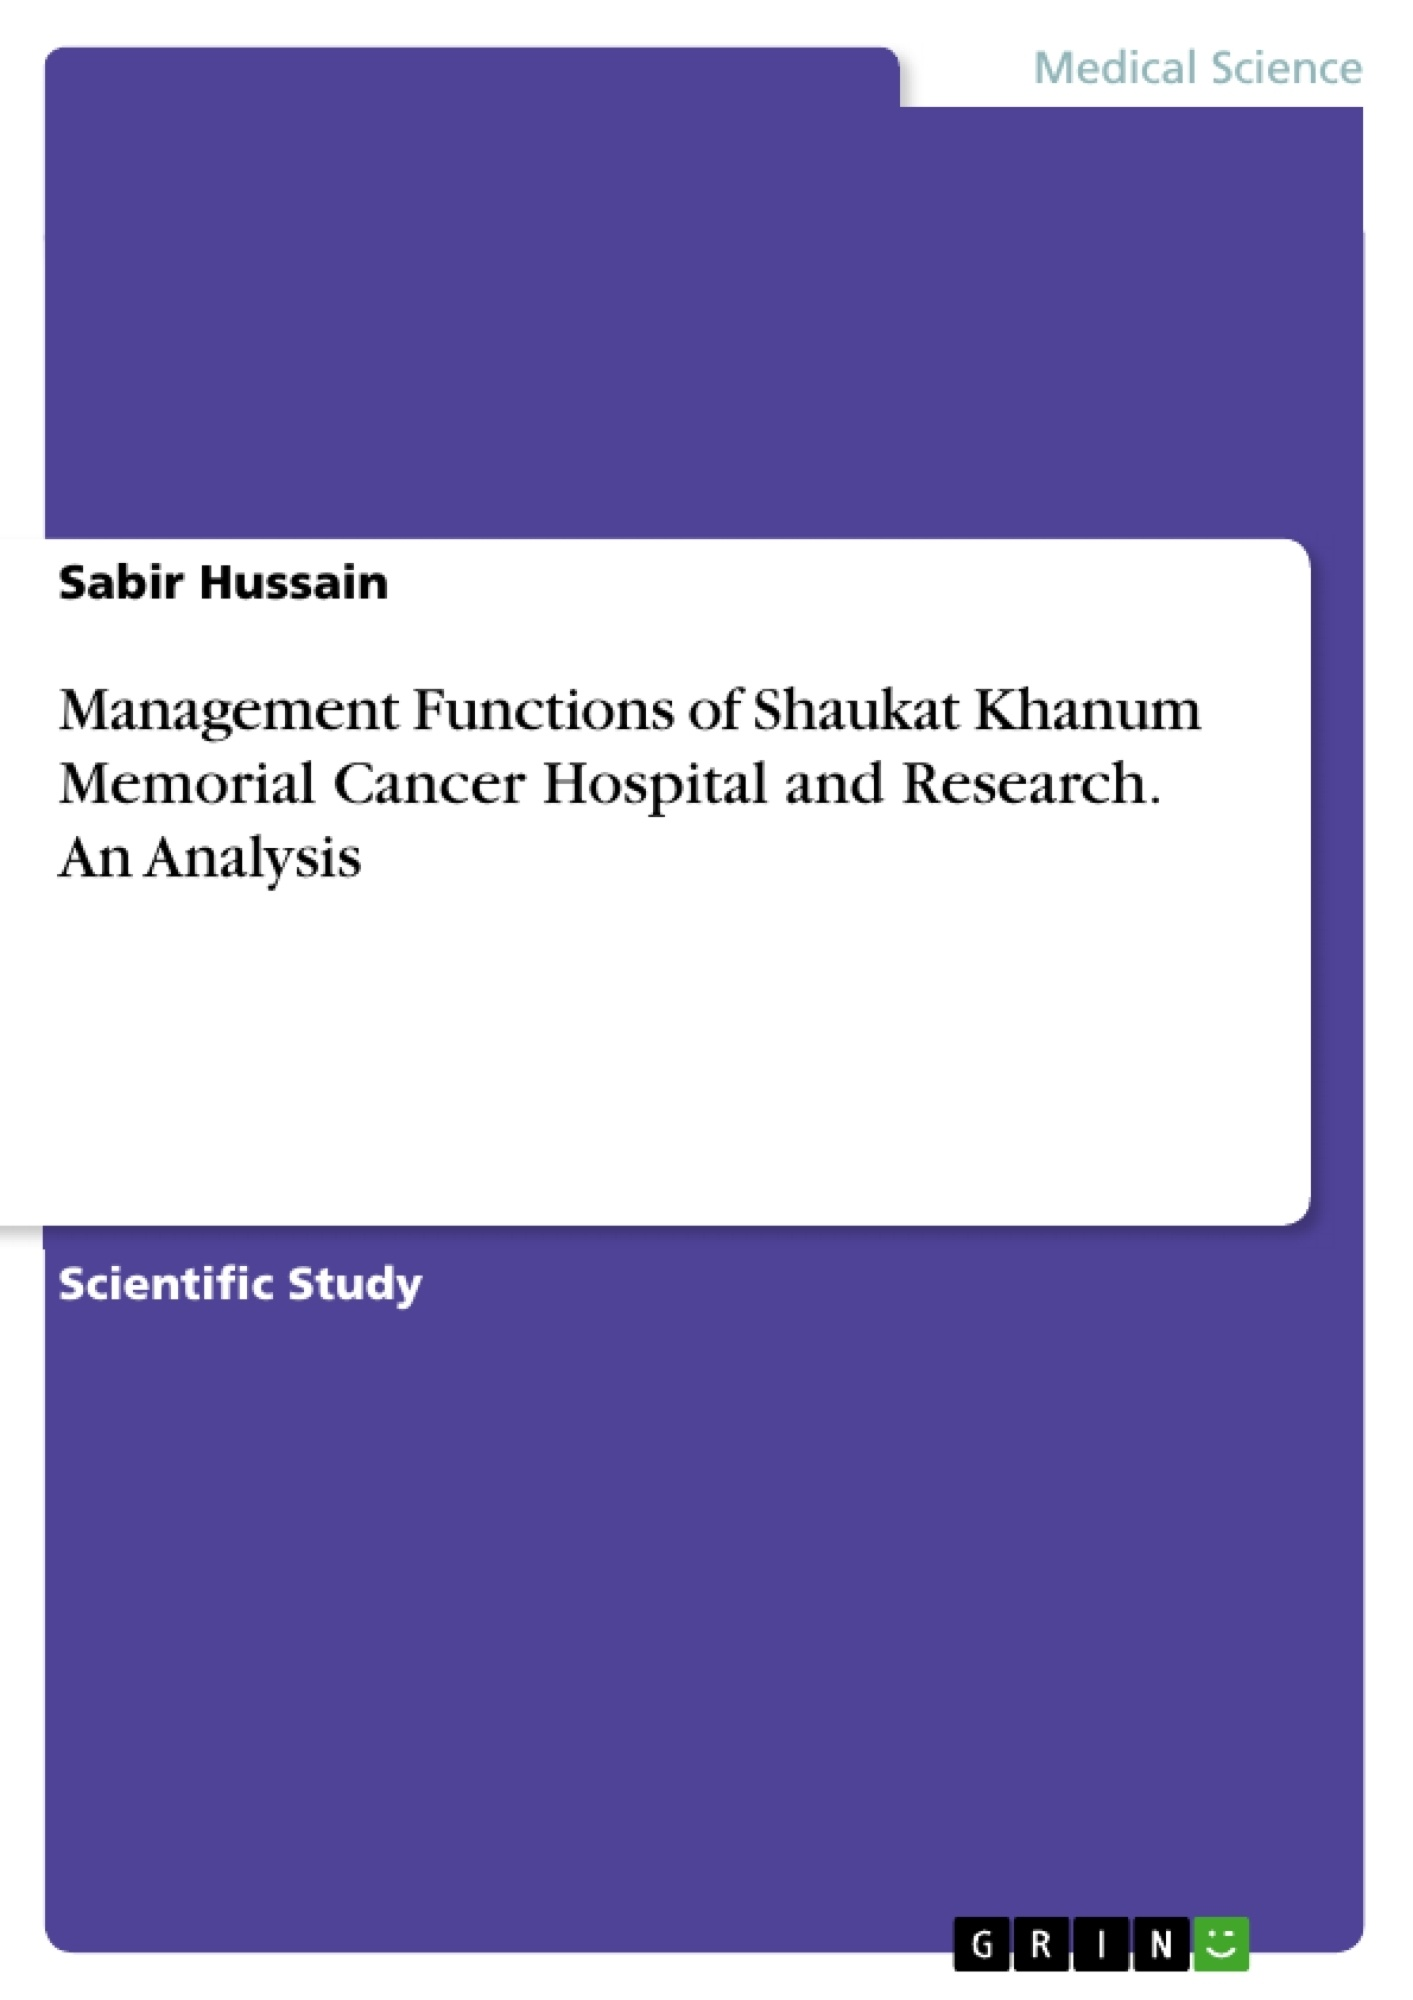 Title: Management Functions of Shaukat Khanum Memorial Cancer Hospital and Research. An Analysis